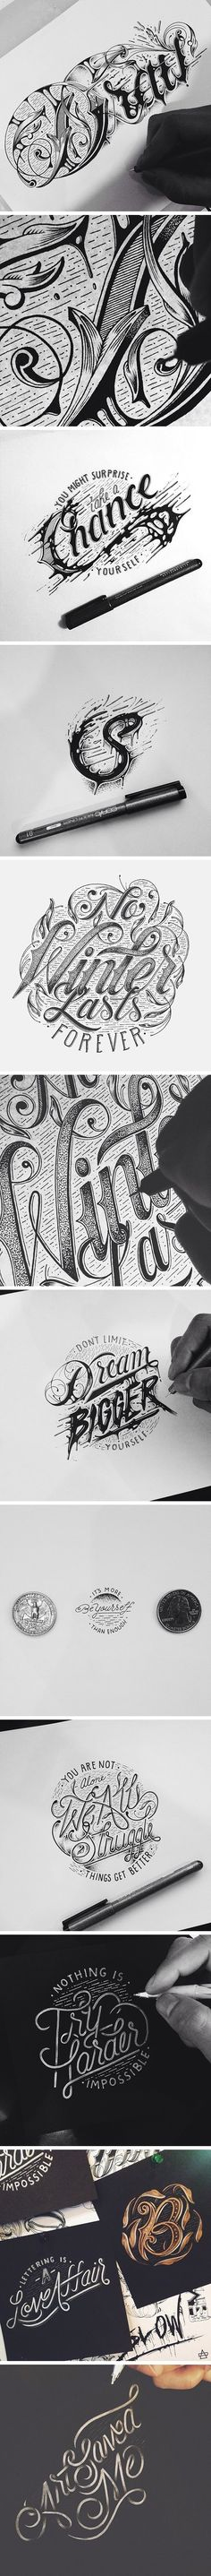 Hand Typography! I am currently trying to learn how to create unique typefaces…